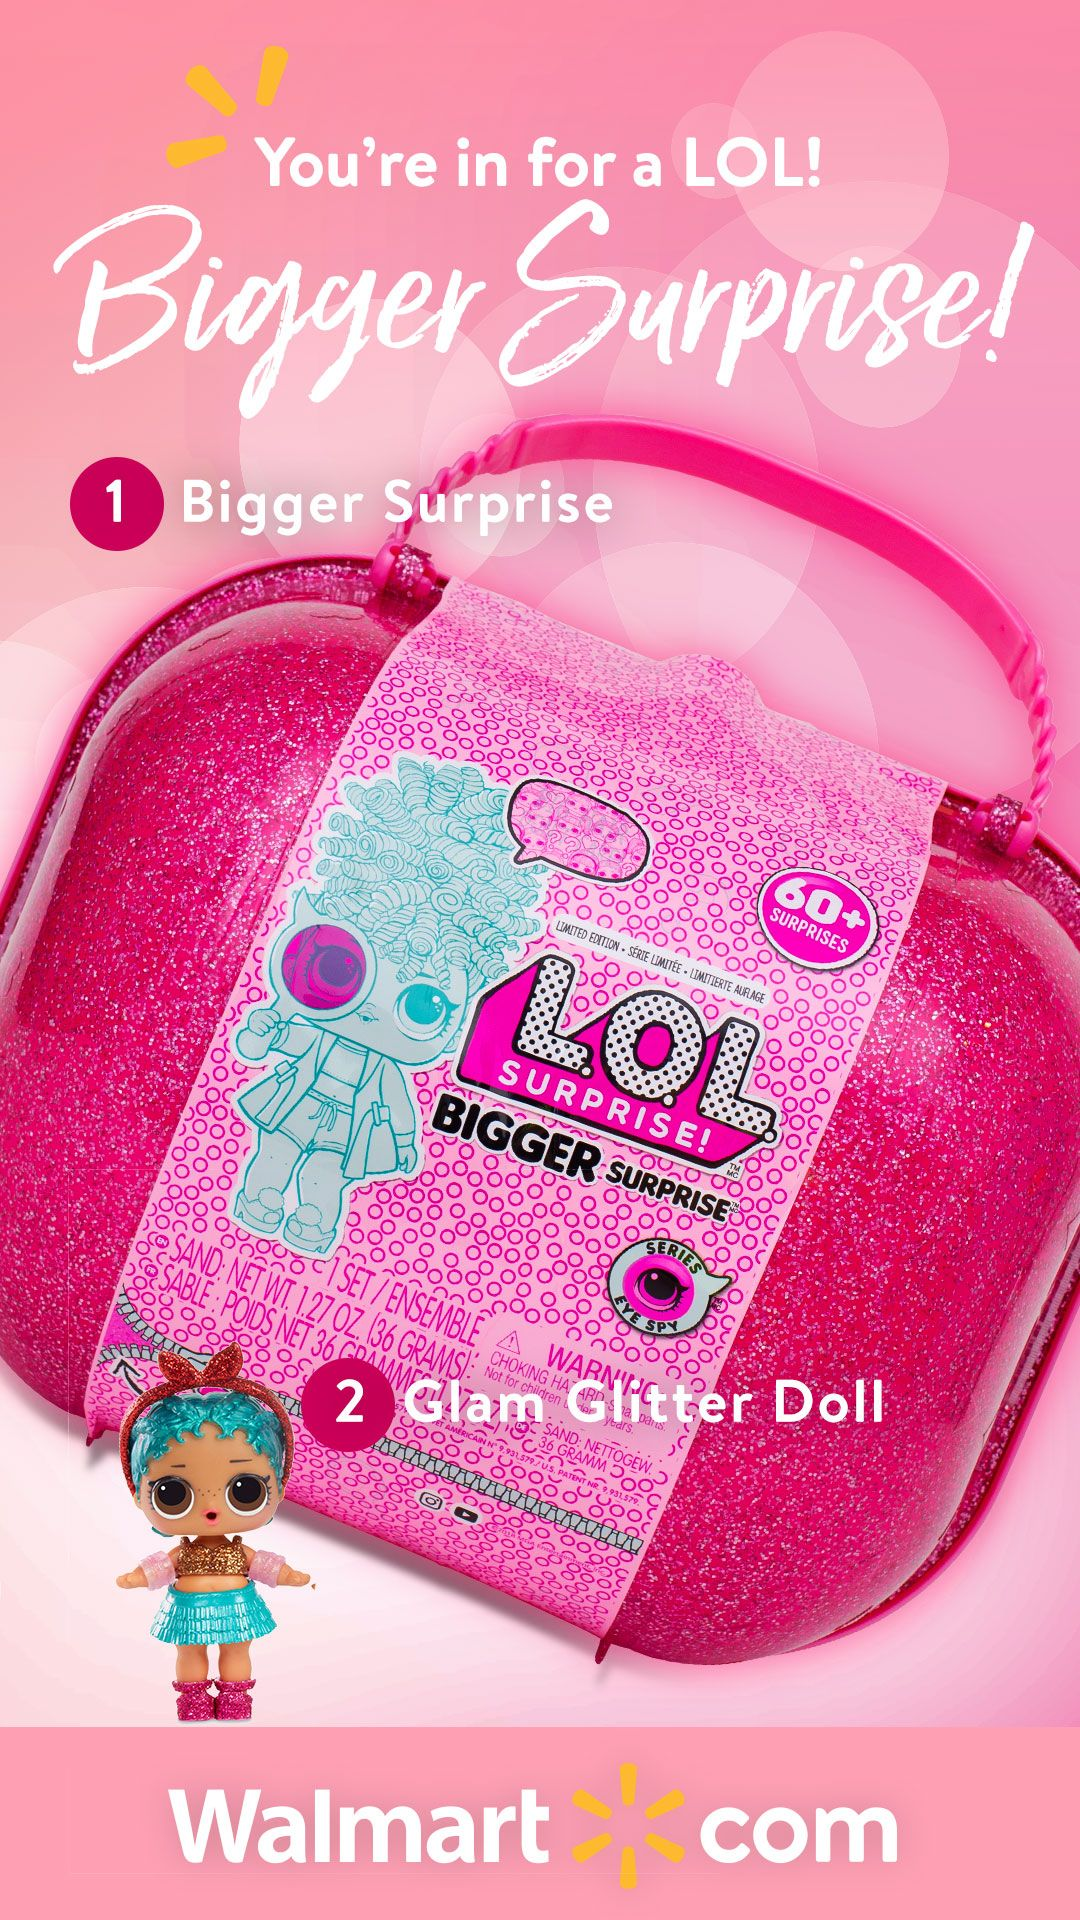 a950572f714d What s better than a surprise  A LOL! Bigger Surprise! Find all the new and  hottest L.O.L. Surprise! collectibles at Walmart.